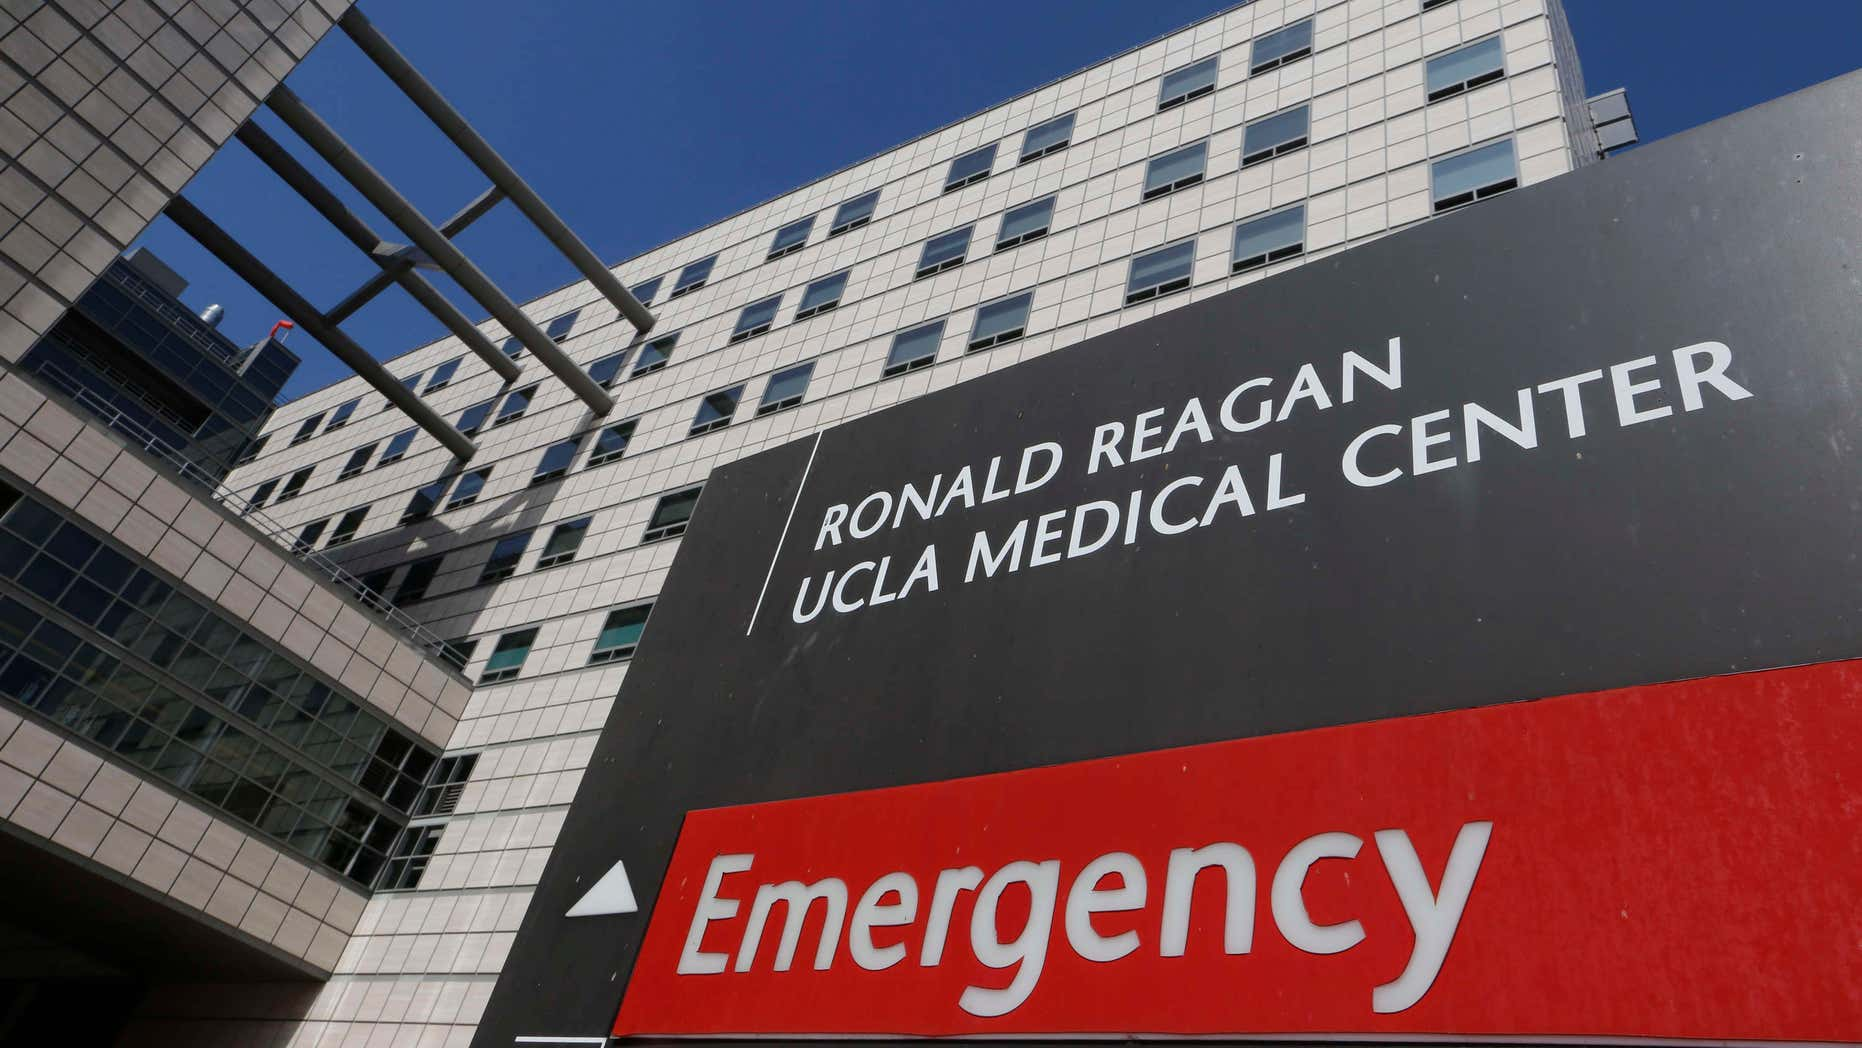 Feb. 19, 2015: The Ronald Reagan UCLA Medical Center building is seen in Los Angeles.